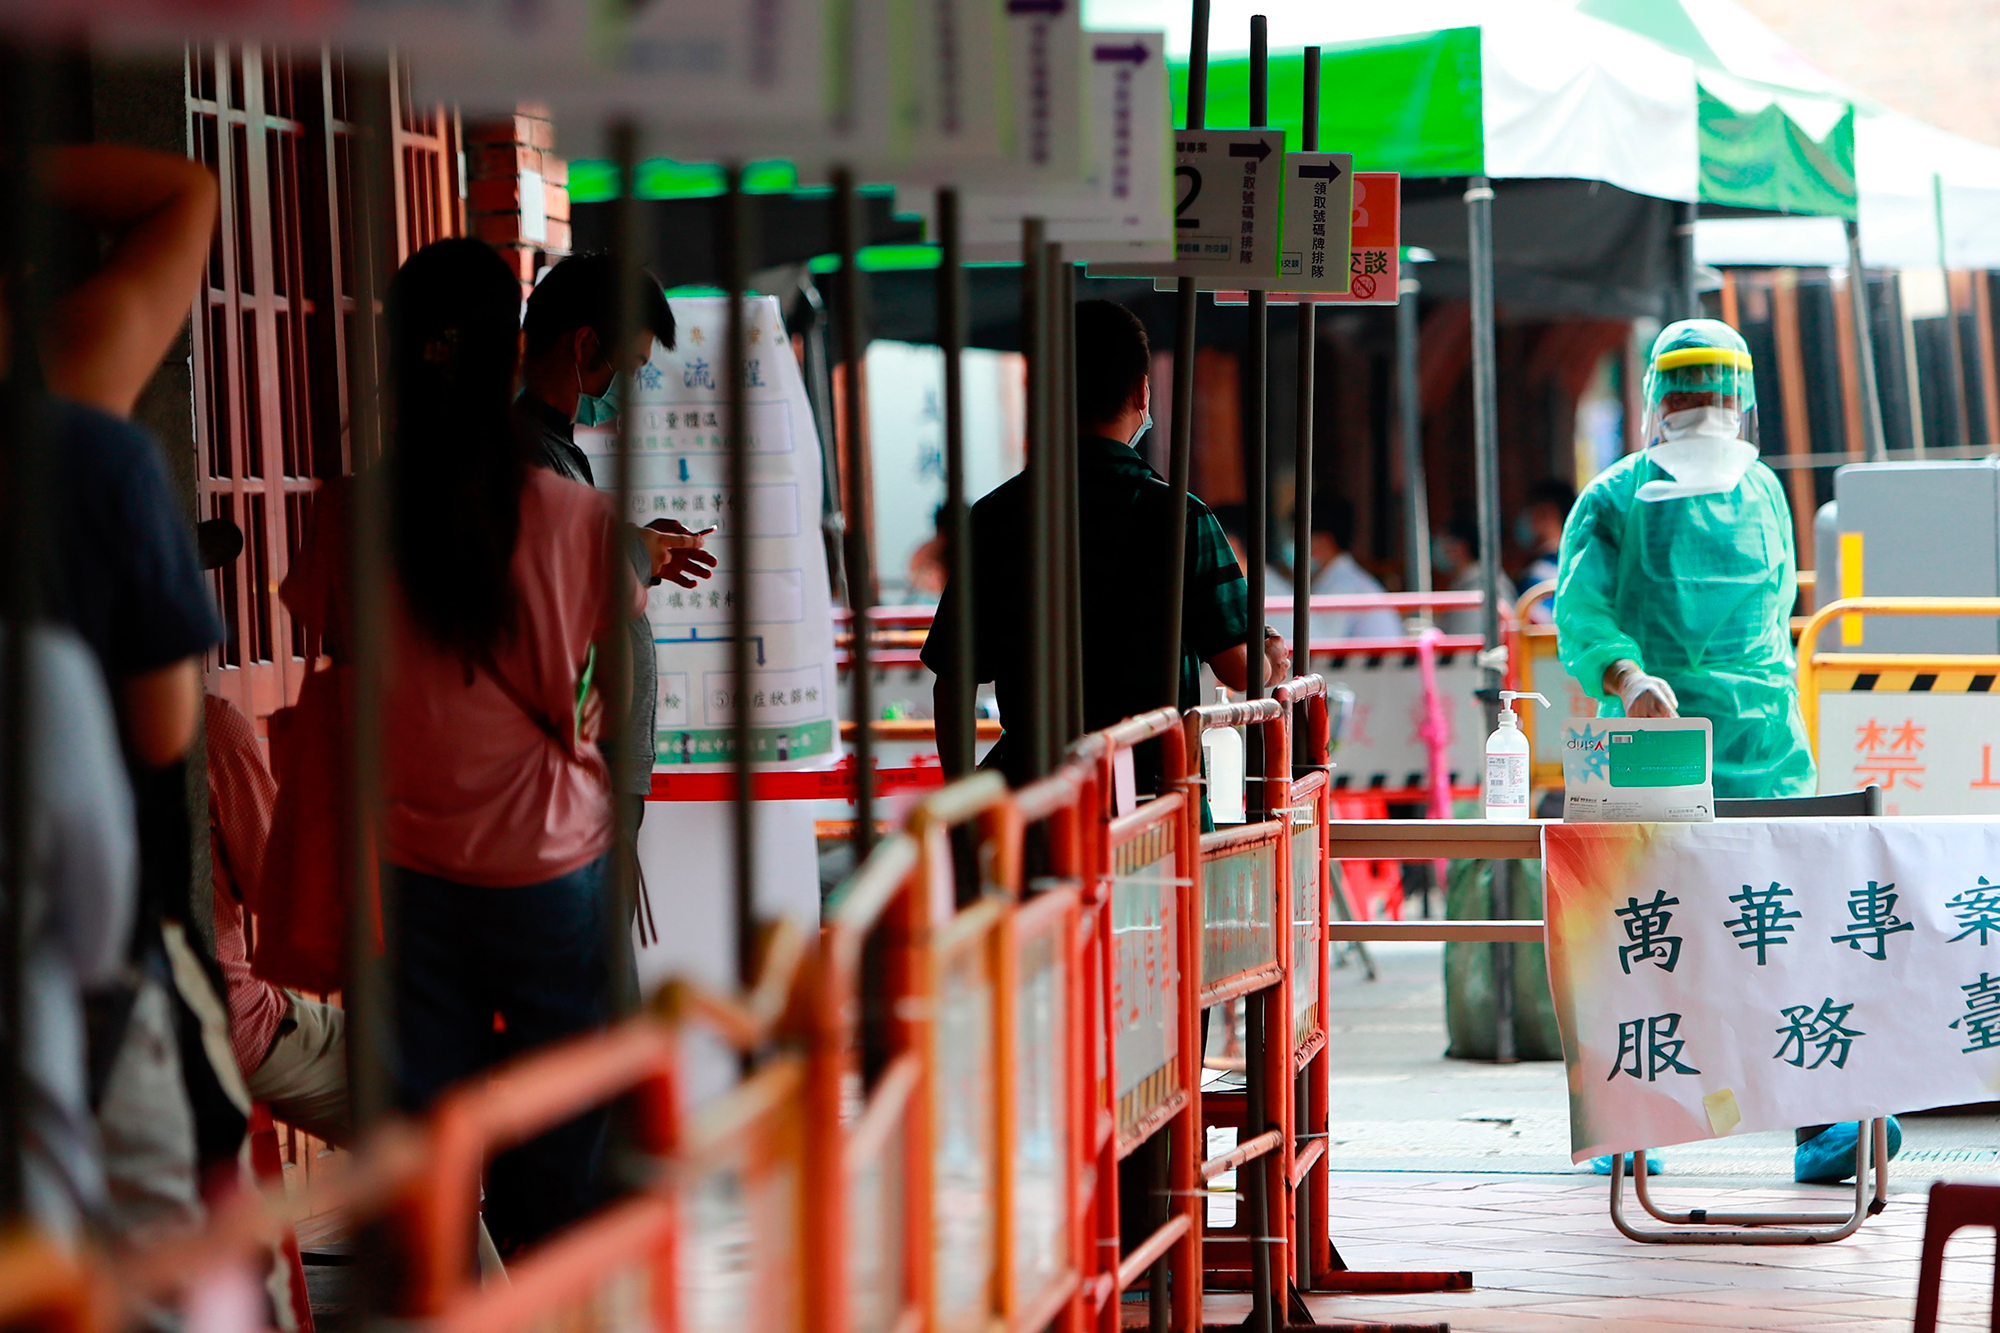 People line up at a rapid Covid-19 testing center in Wanhua district in Taipei, Taiwan, on May 19.